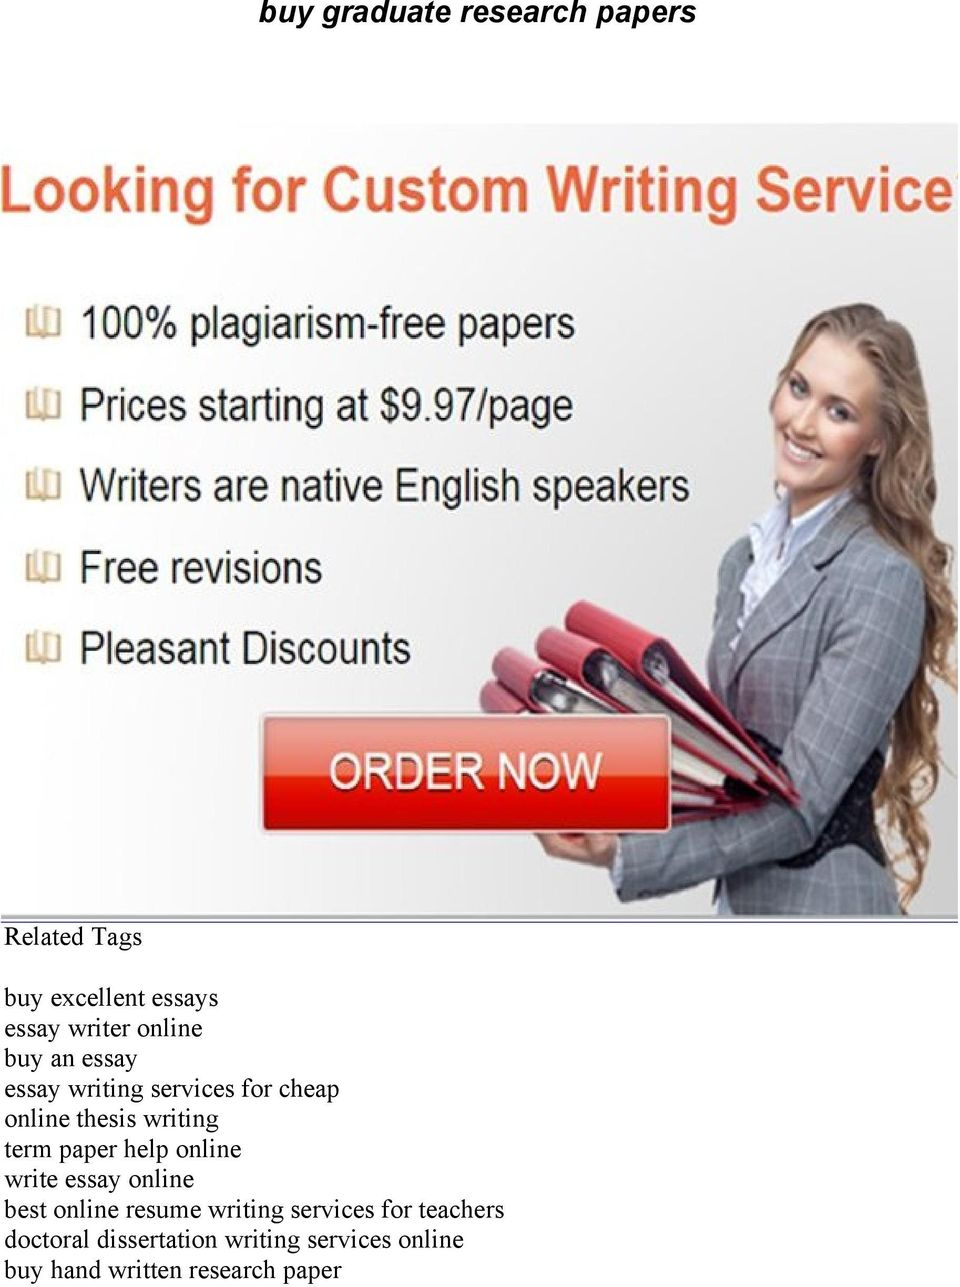 paper help online write essay online best online resume writing services for